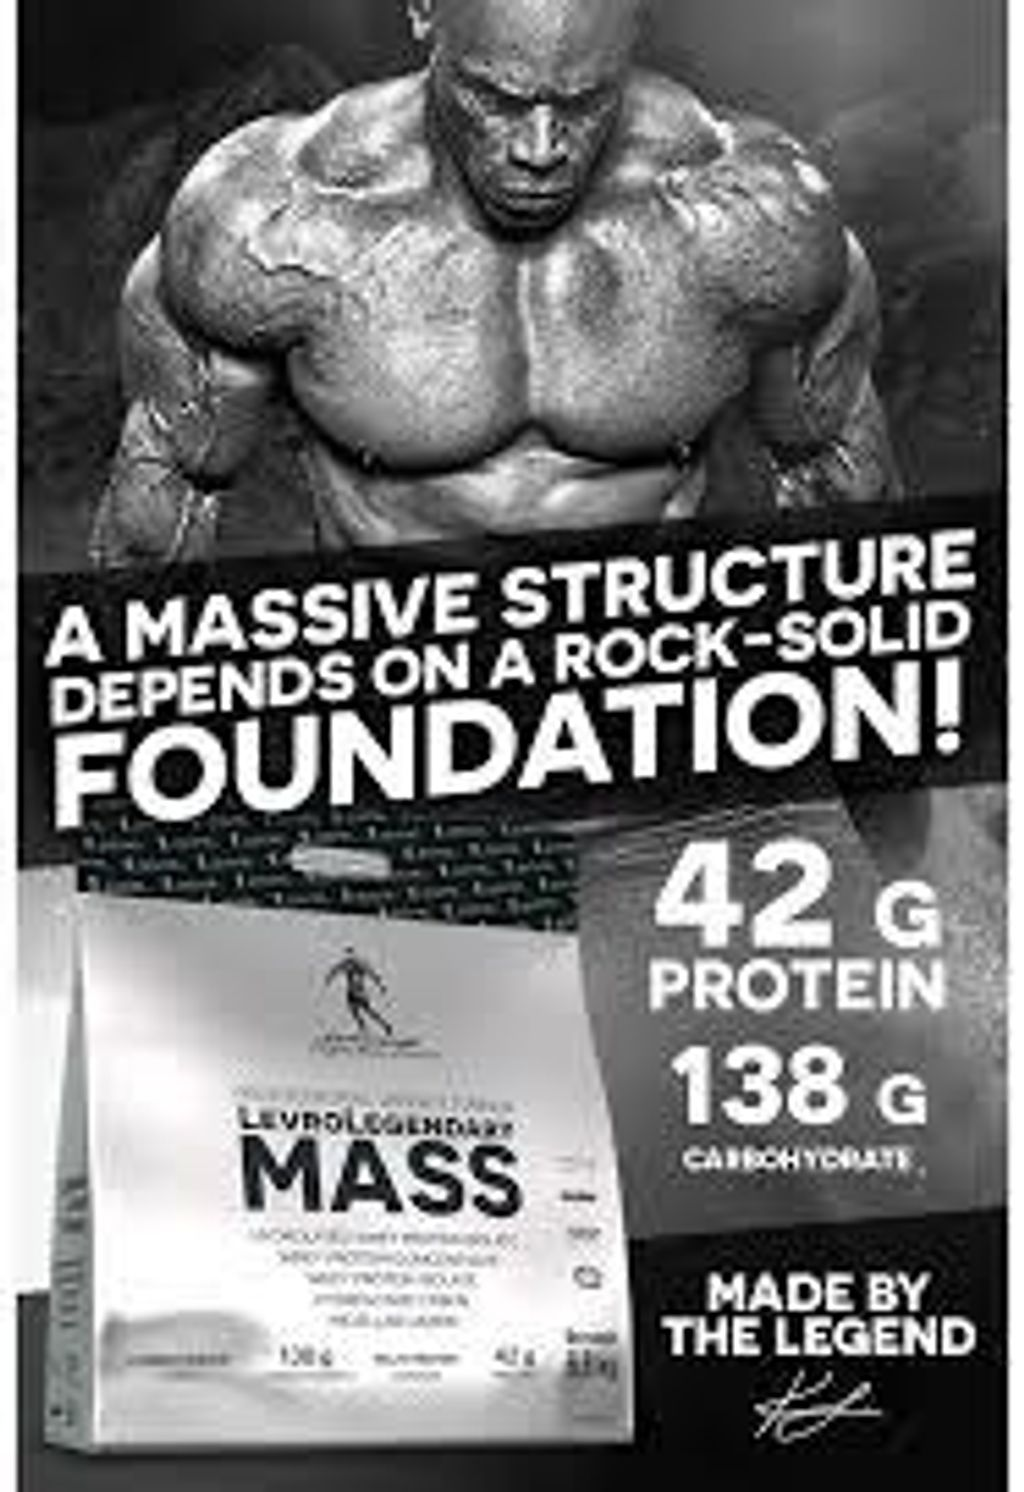 KEVIN LEVRONE LEVRO LEGENDARY MASS GAINER 6800g malaysia protein.jpg